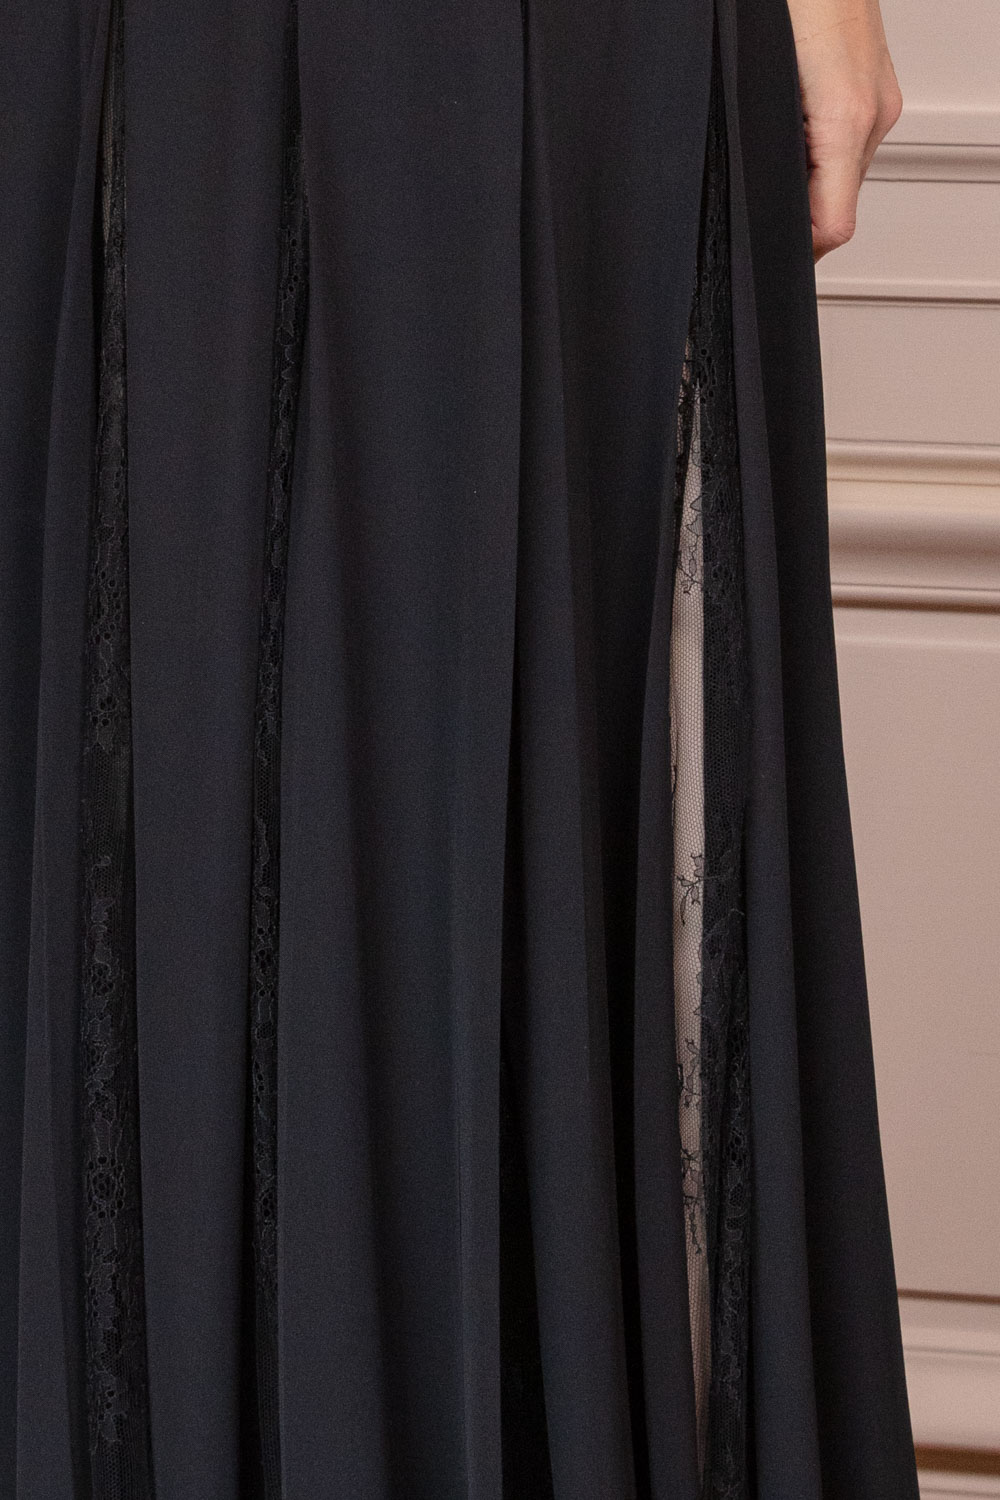 Evening gown in black crepe georgette with twist neck over nude lace underdress